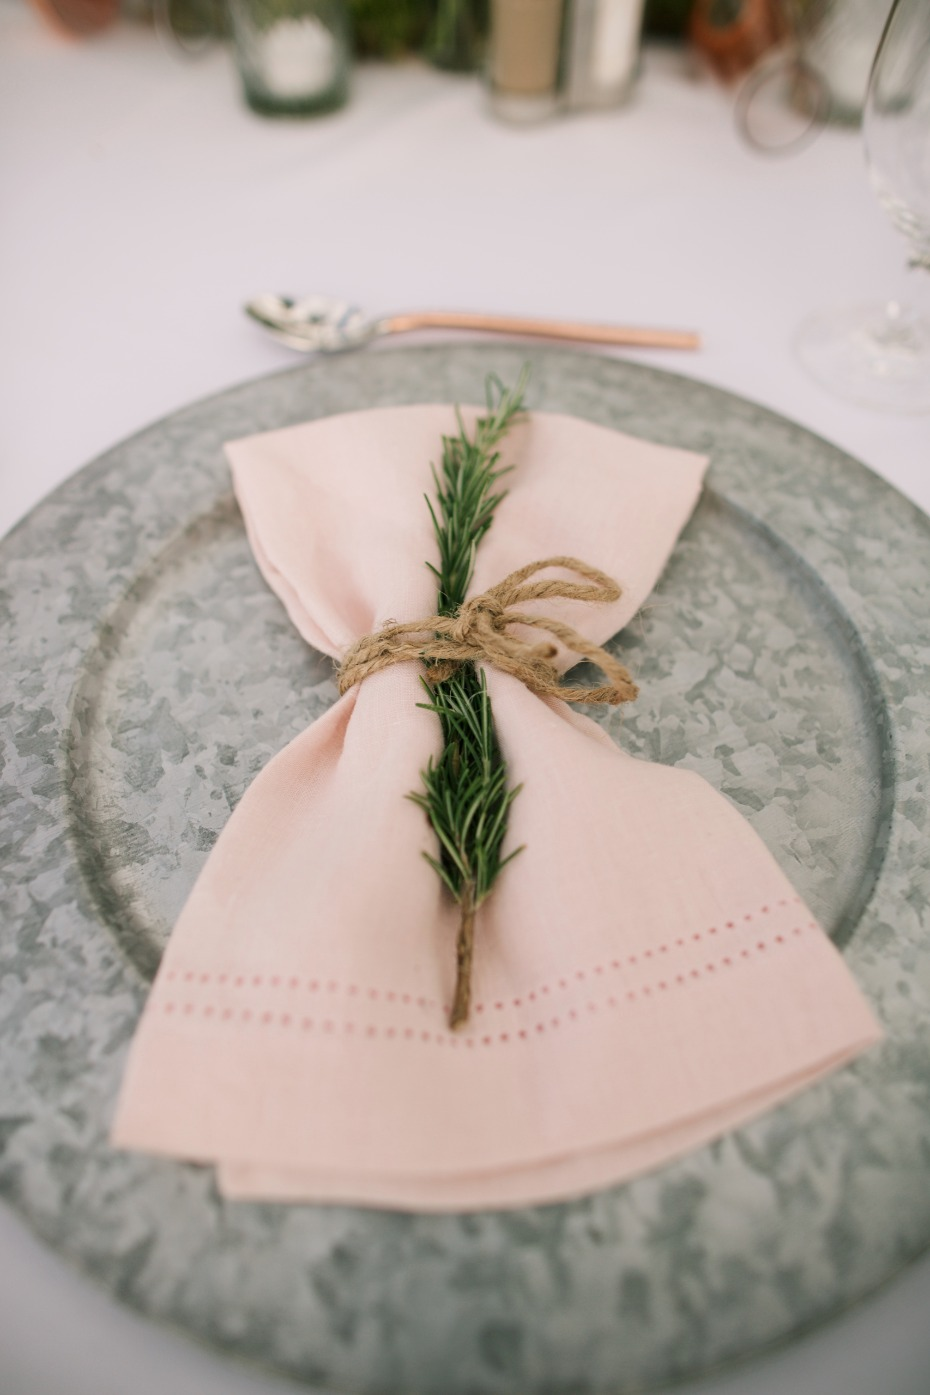 Simple place setting with a sprig of greenery